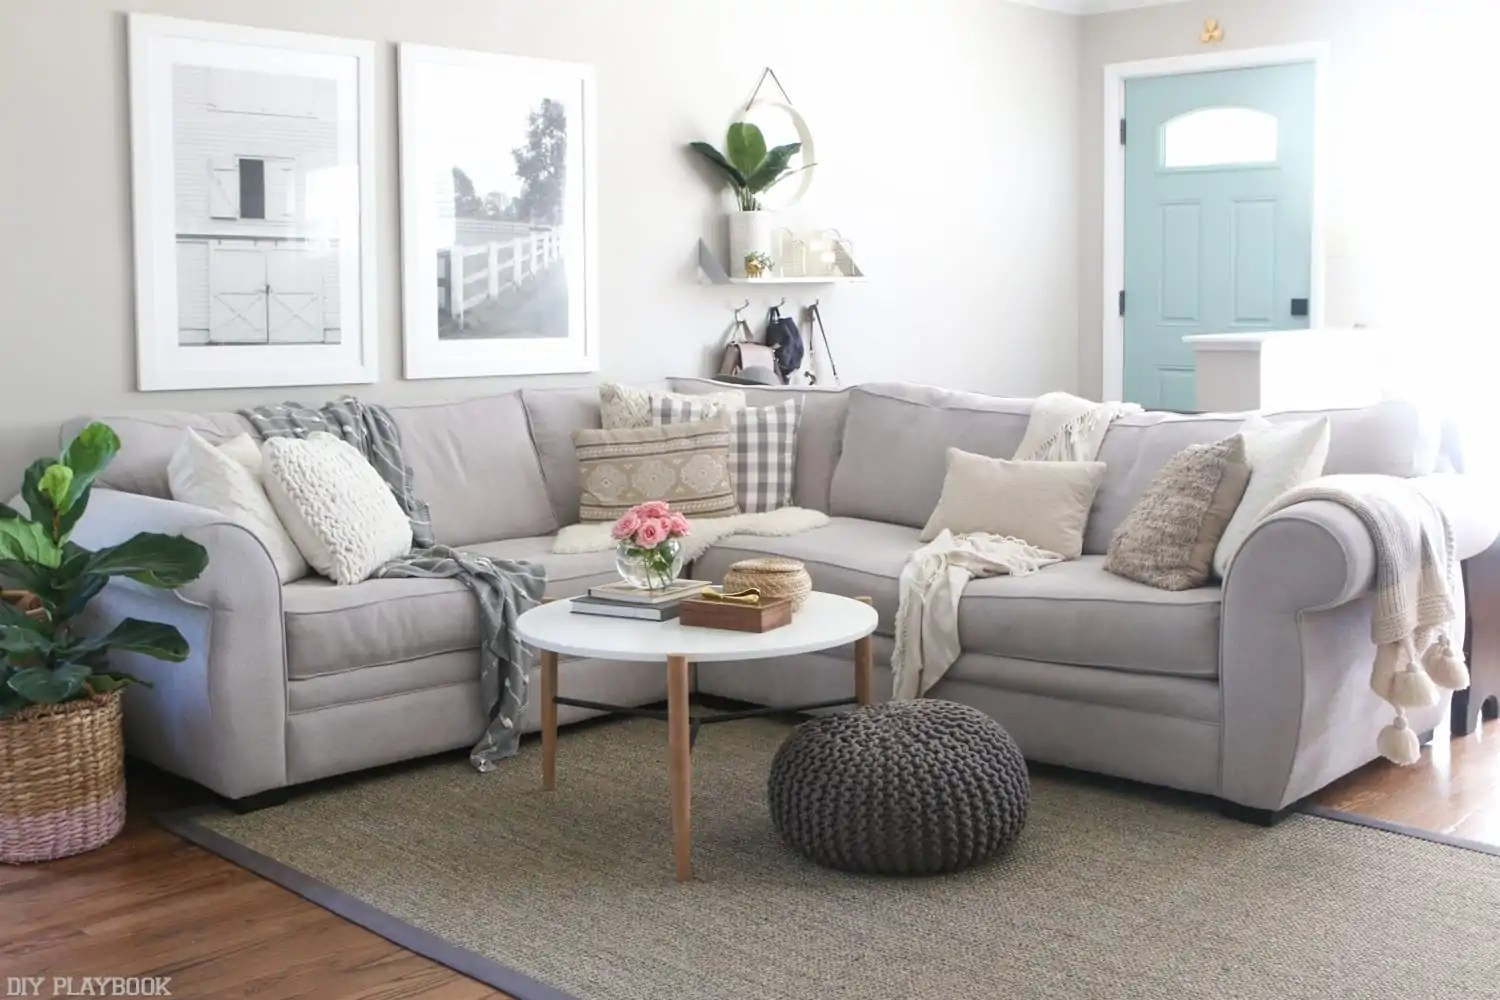 how to clean couch cushions in four